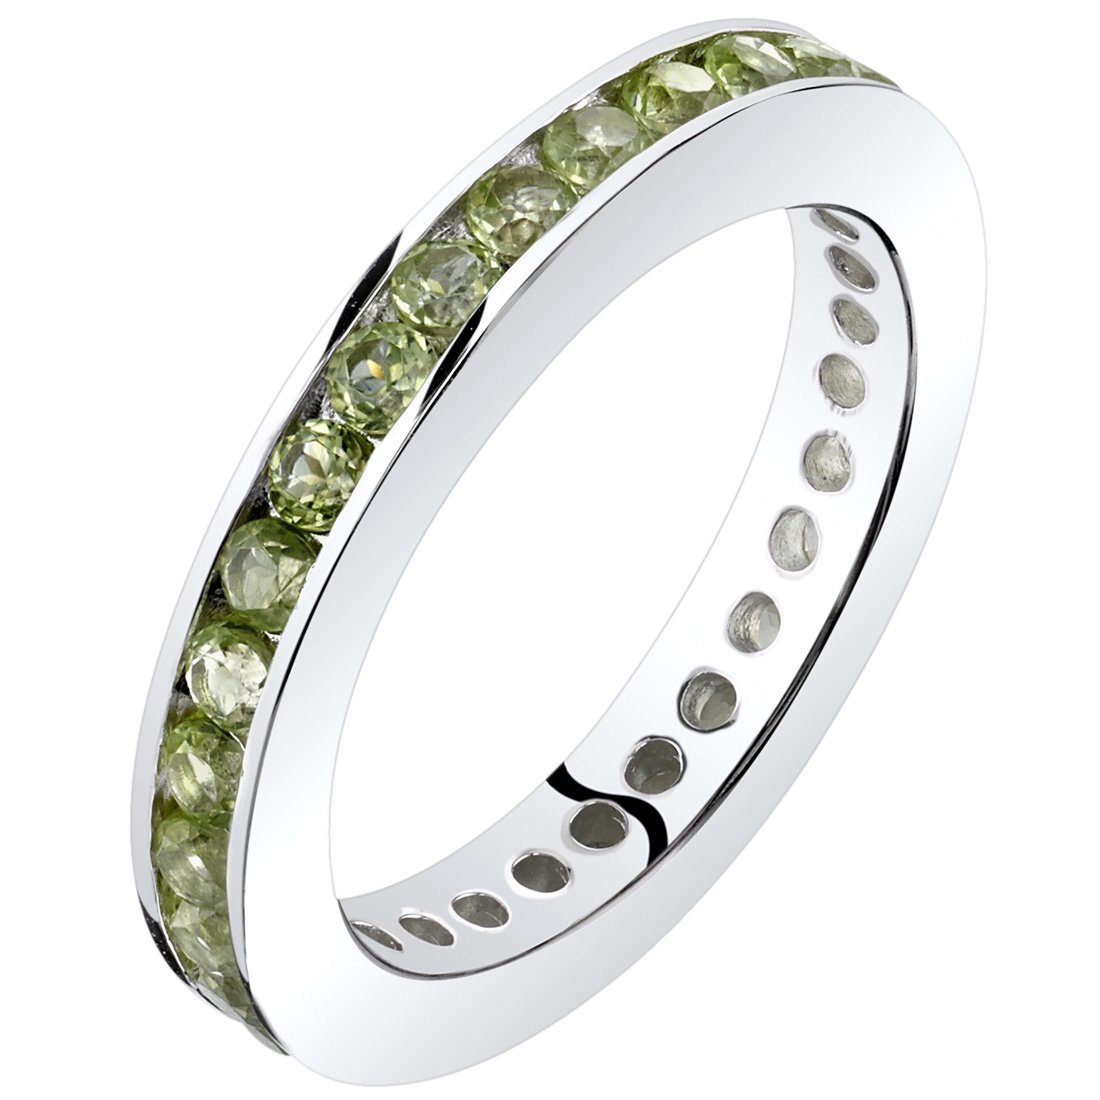 Peridot Eternity Band Ring Sterling Silver 1.00 Carats Size 7